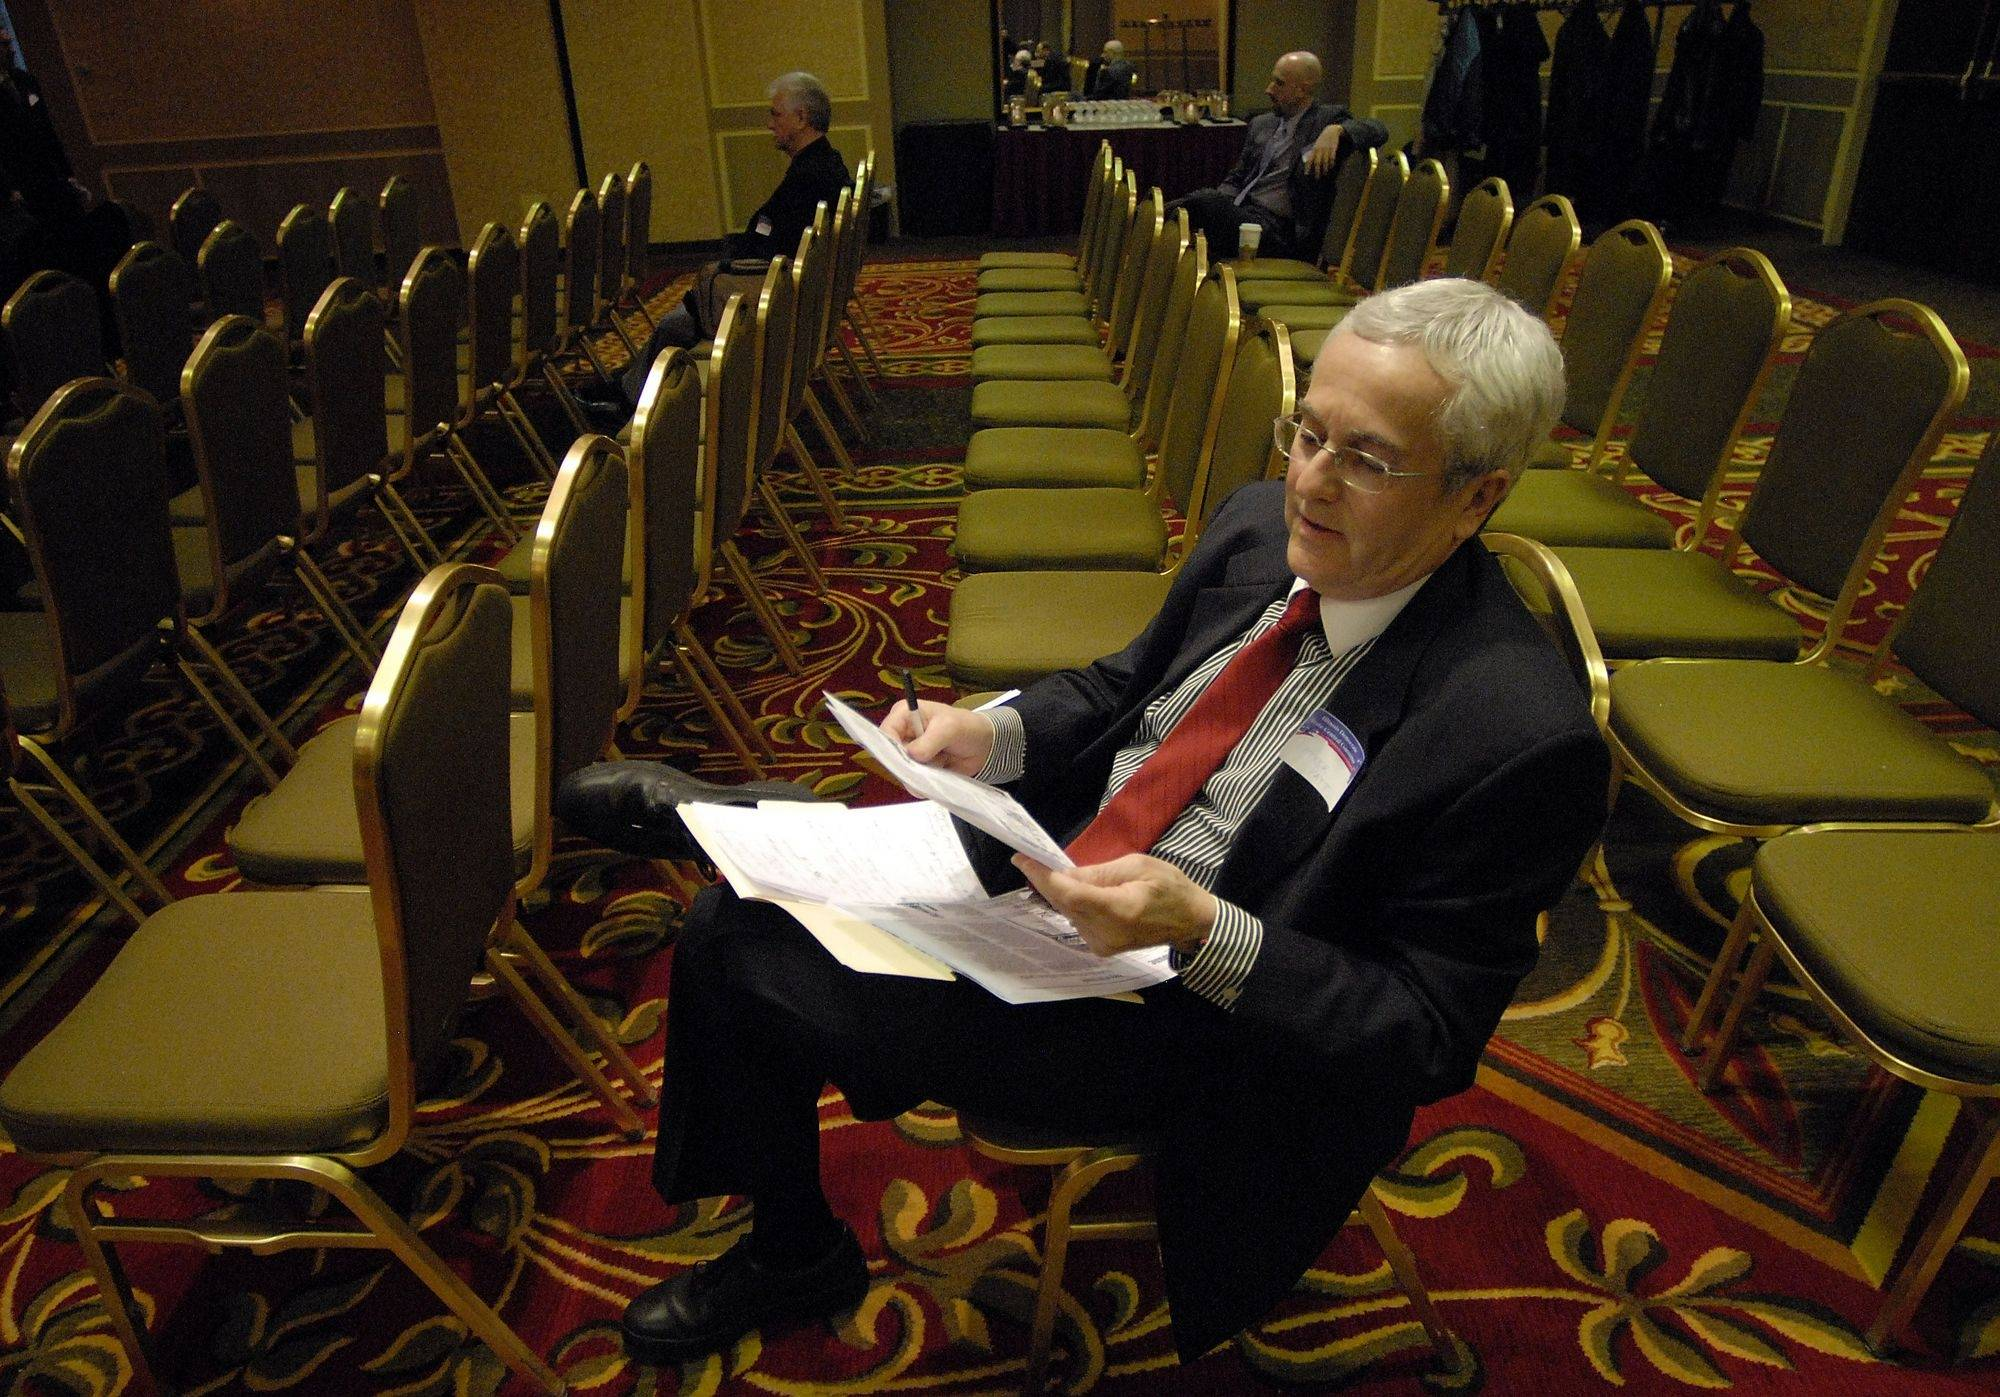 Patrick Patt of Lake Forest looks over his papers before giving a speech.